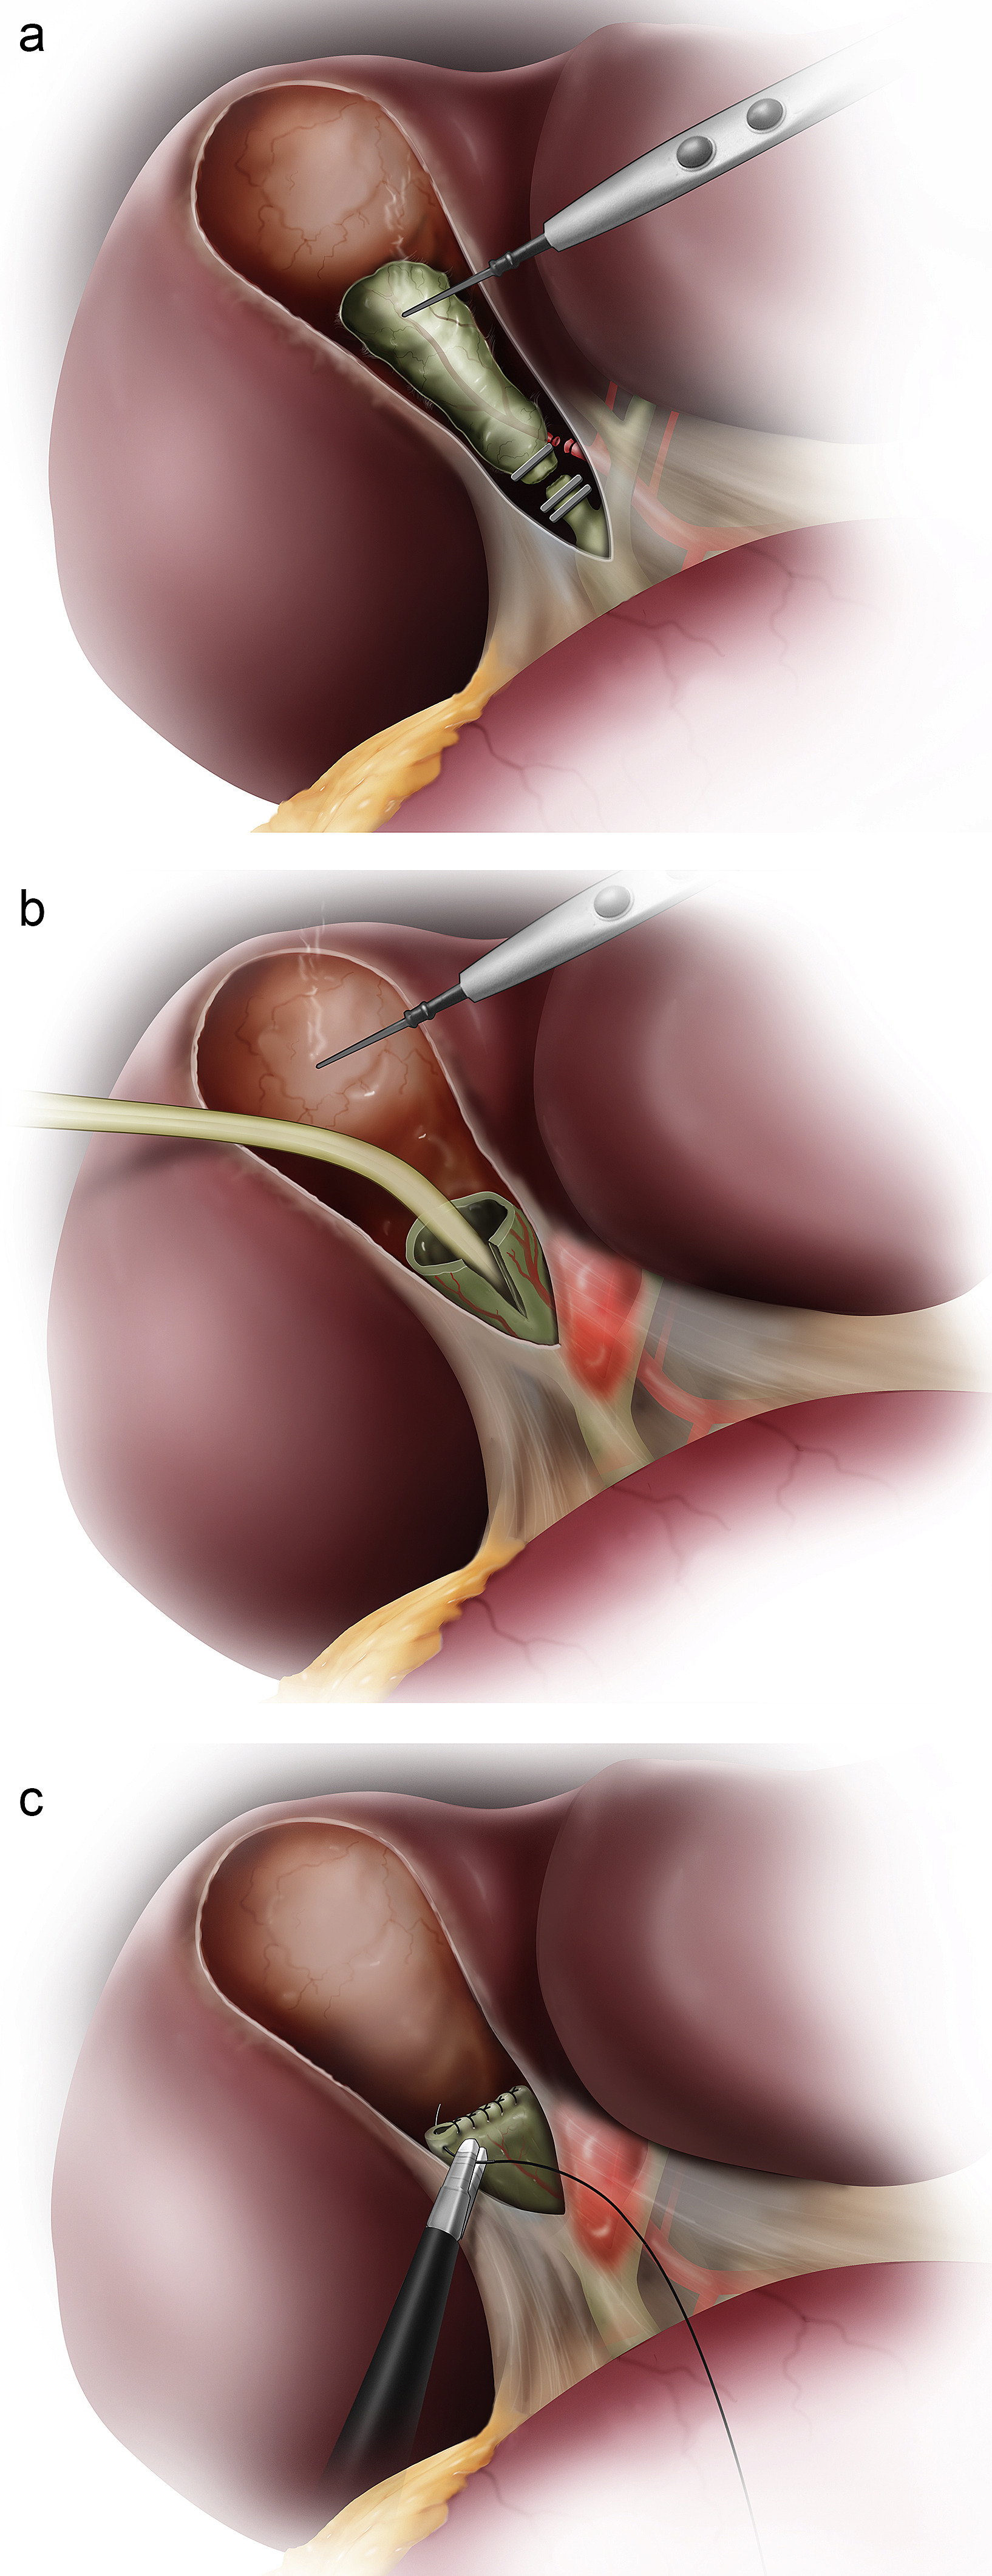 Subtotal Cholecystectomy For The Hostile Gallbladder Failure To